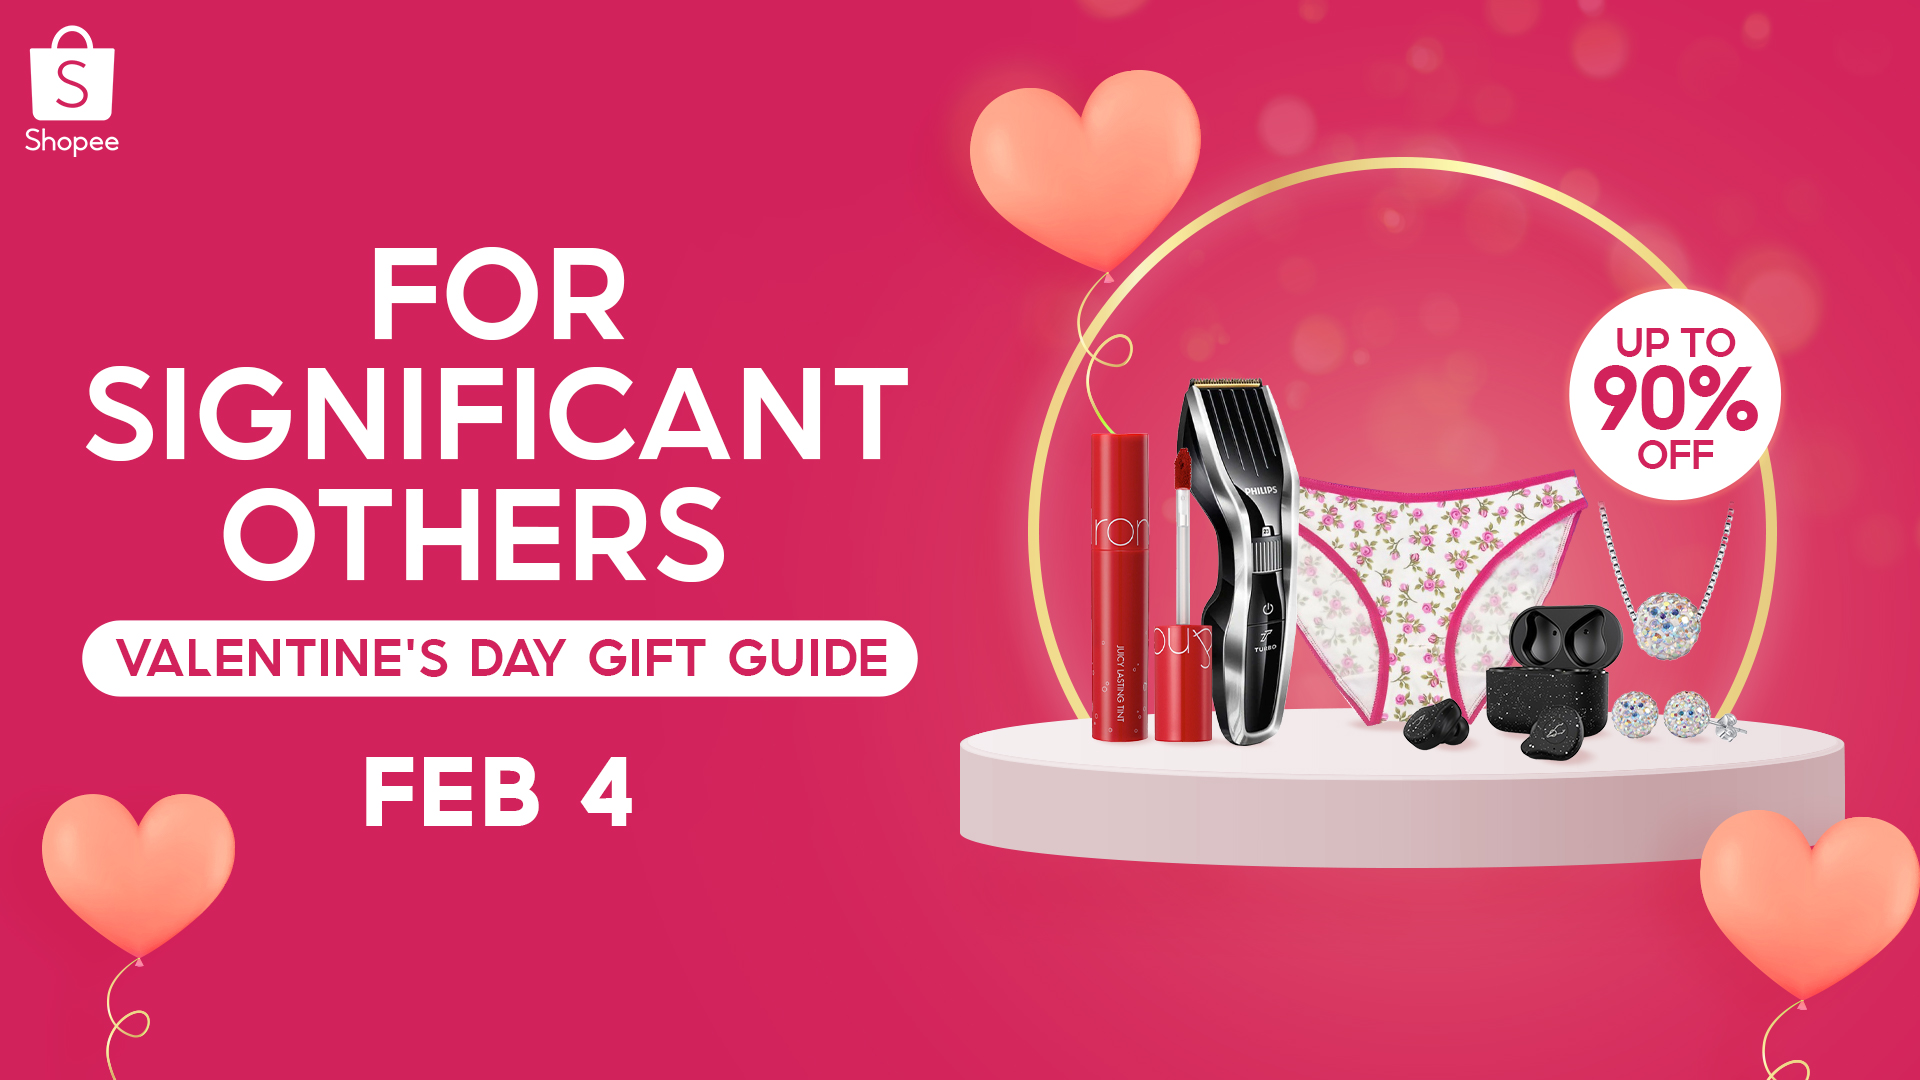 Make Your Significant Other Feel Loved with these Special Valentine's Day Gifts